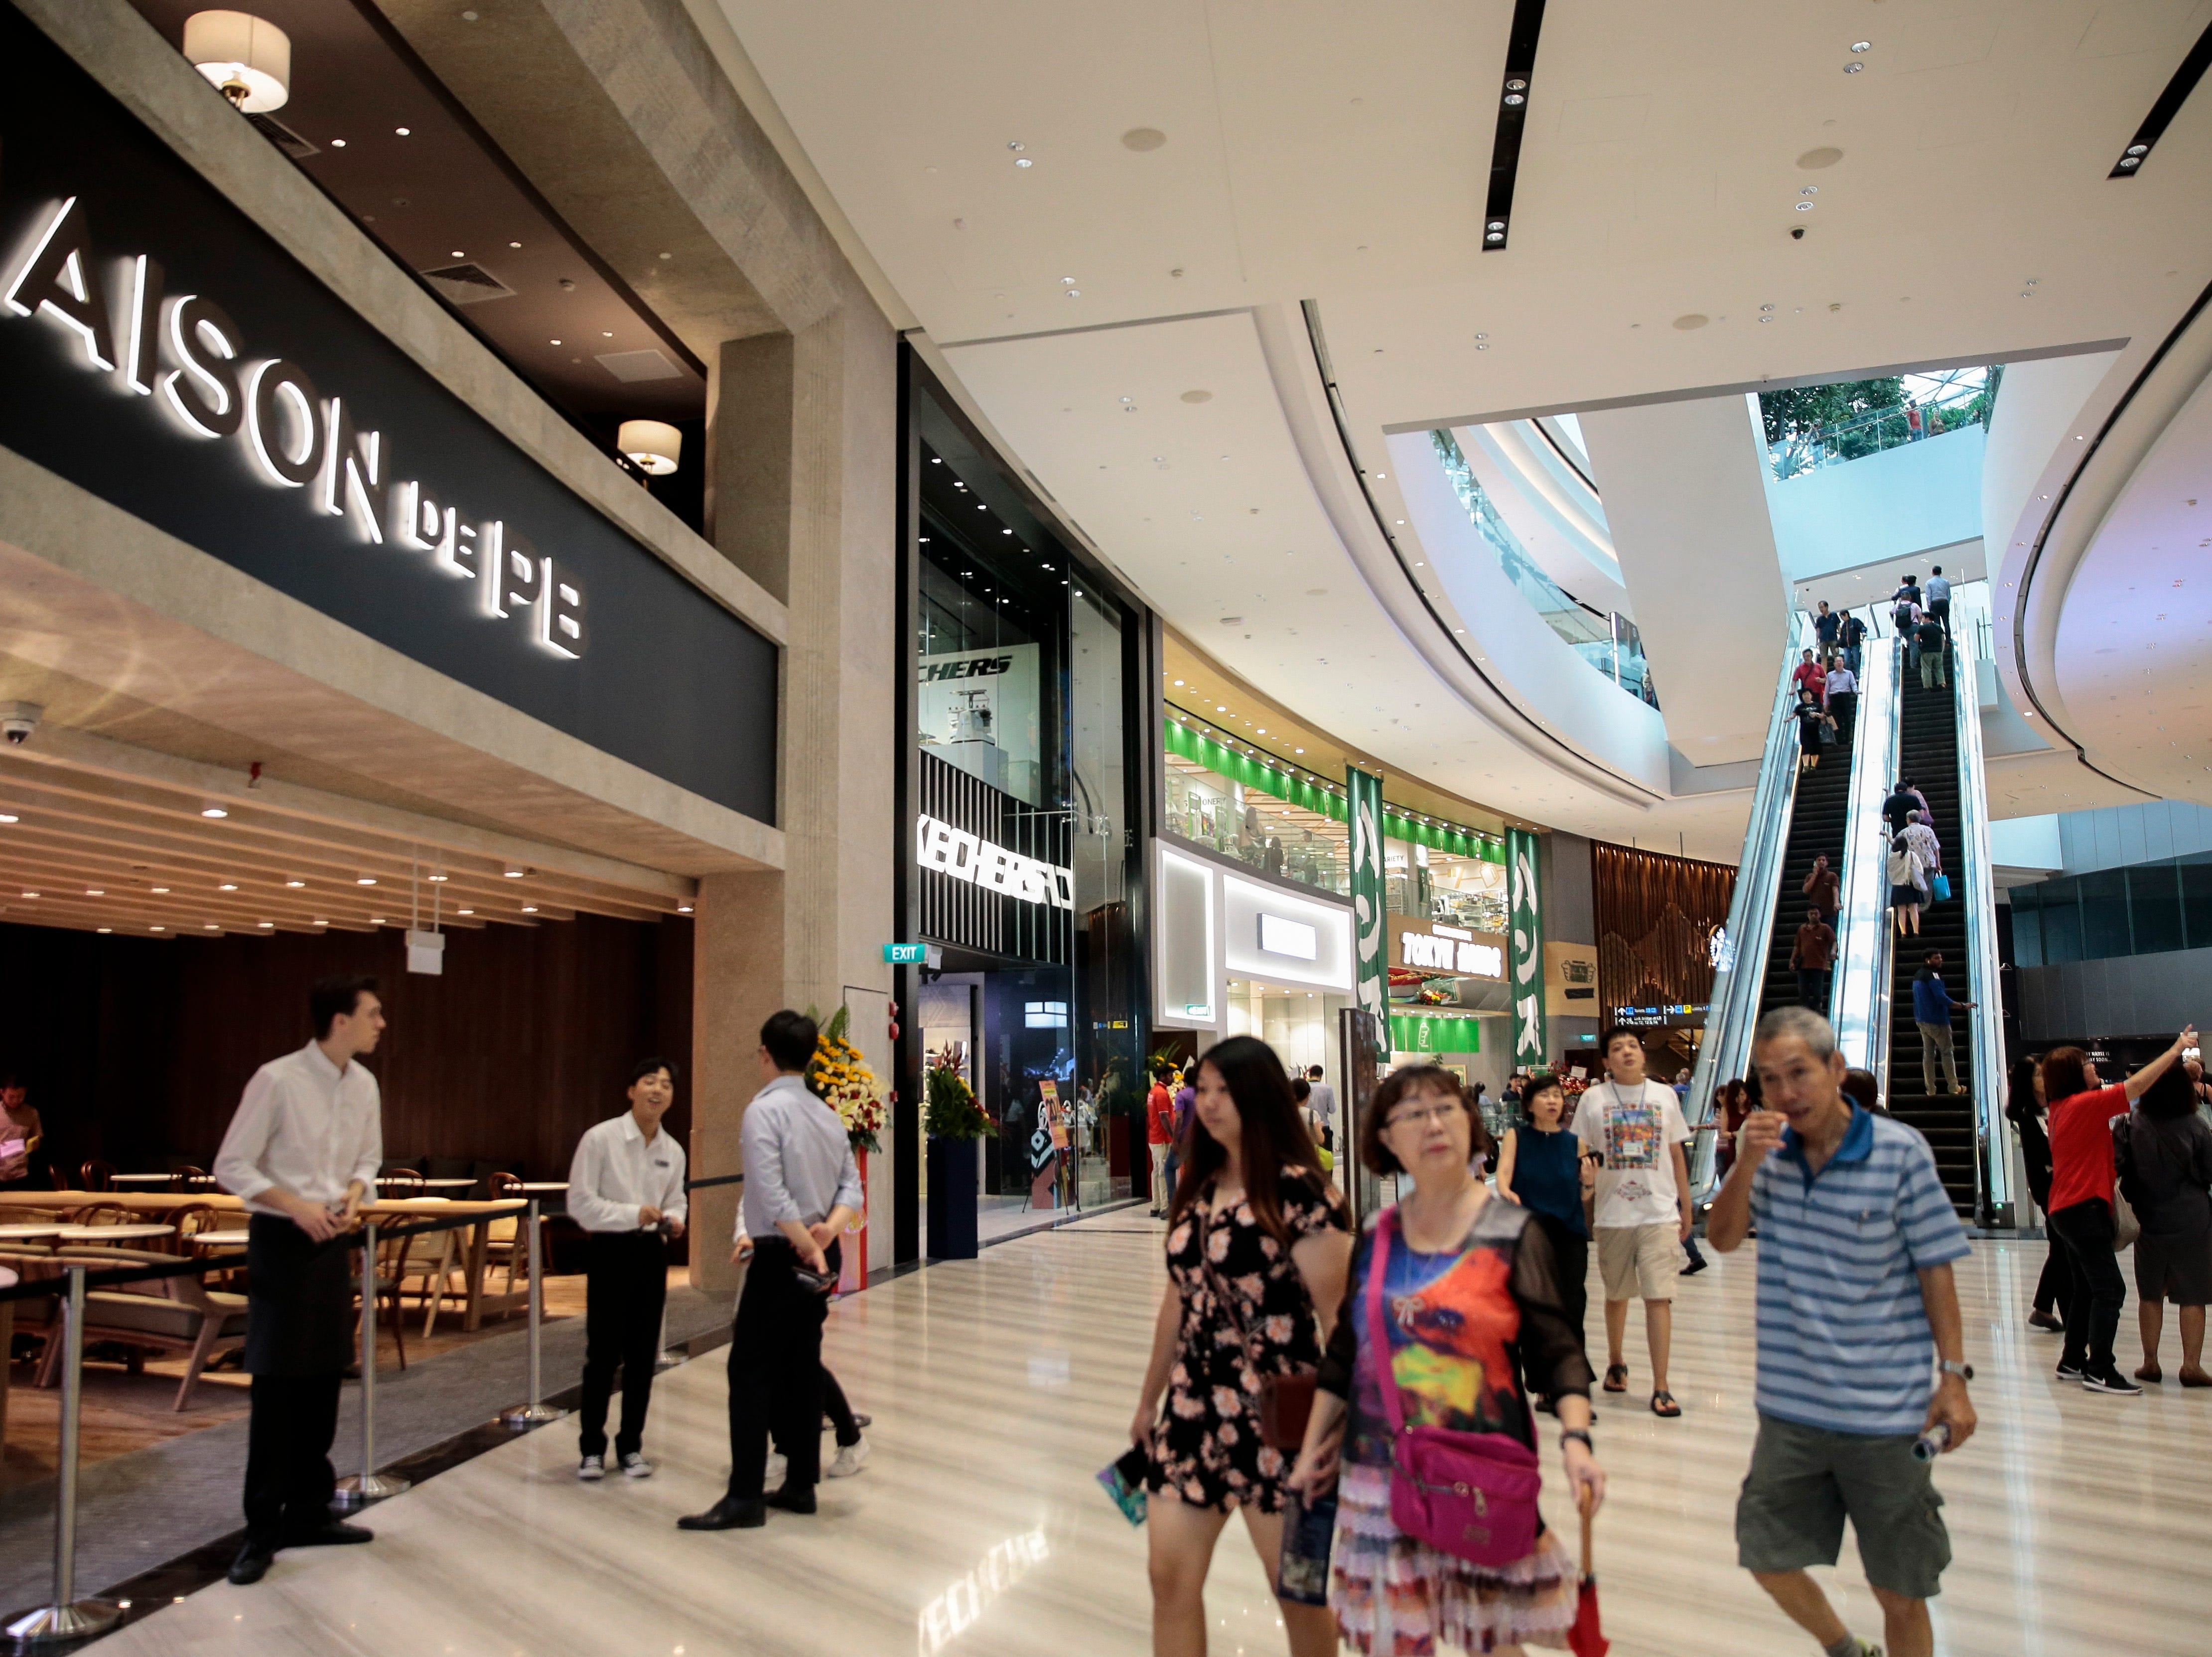 Retail and food outlets inside Jewel Changi in Singapore on April 11, 2019. The ten-story structure covers a 3.85 hectare area and includes a hotel, retail and dining outlets, early check-in counters and baggage areas.